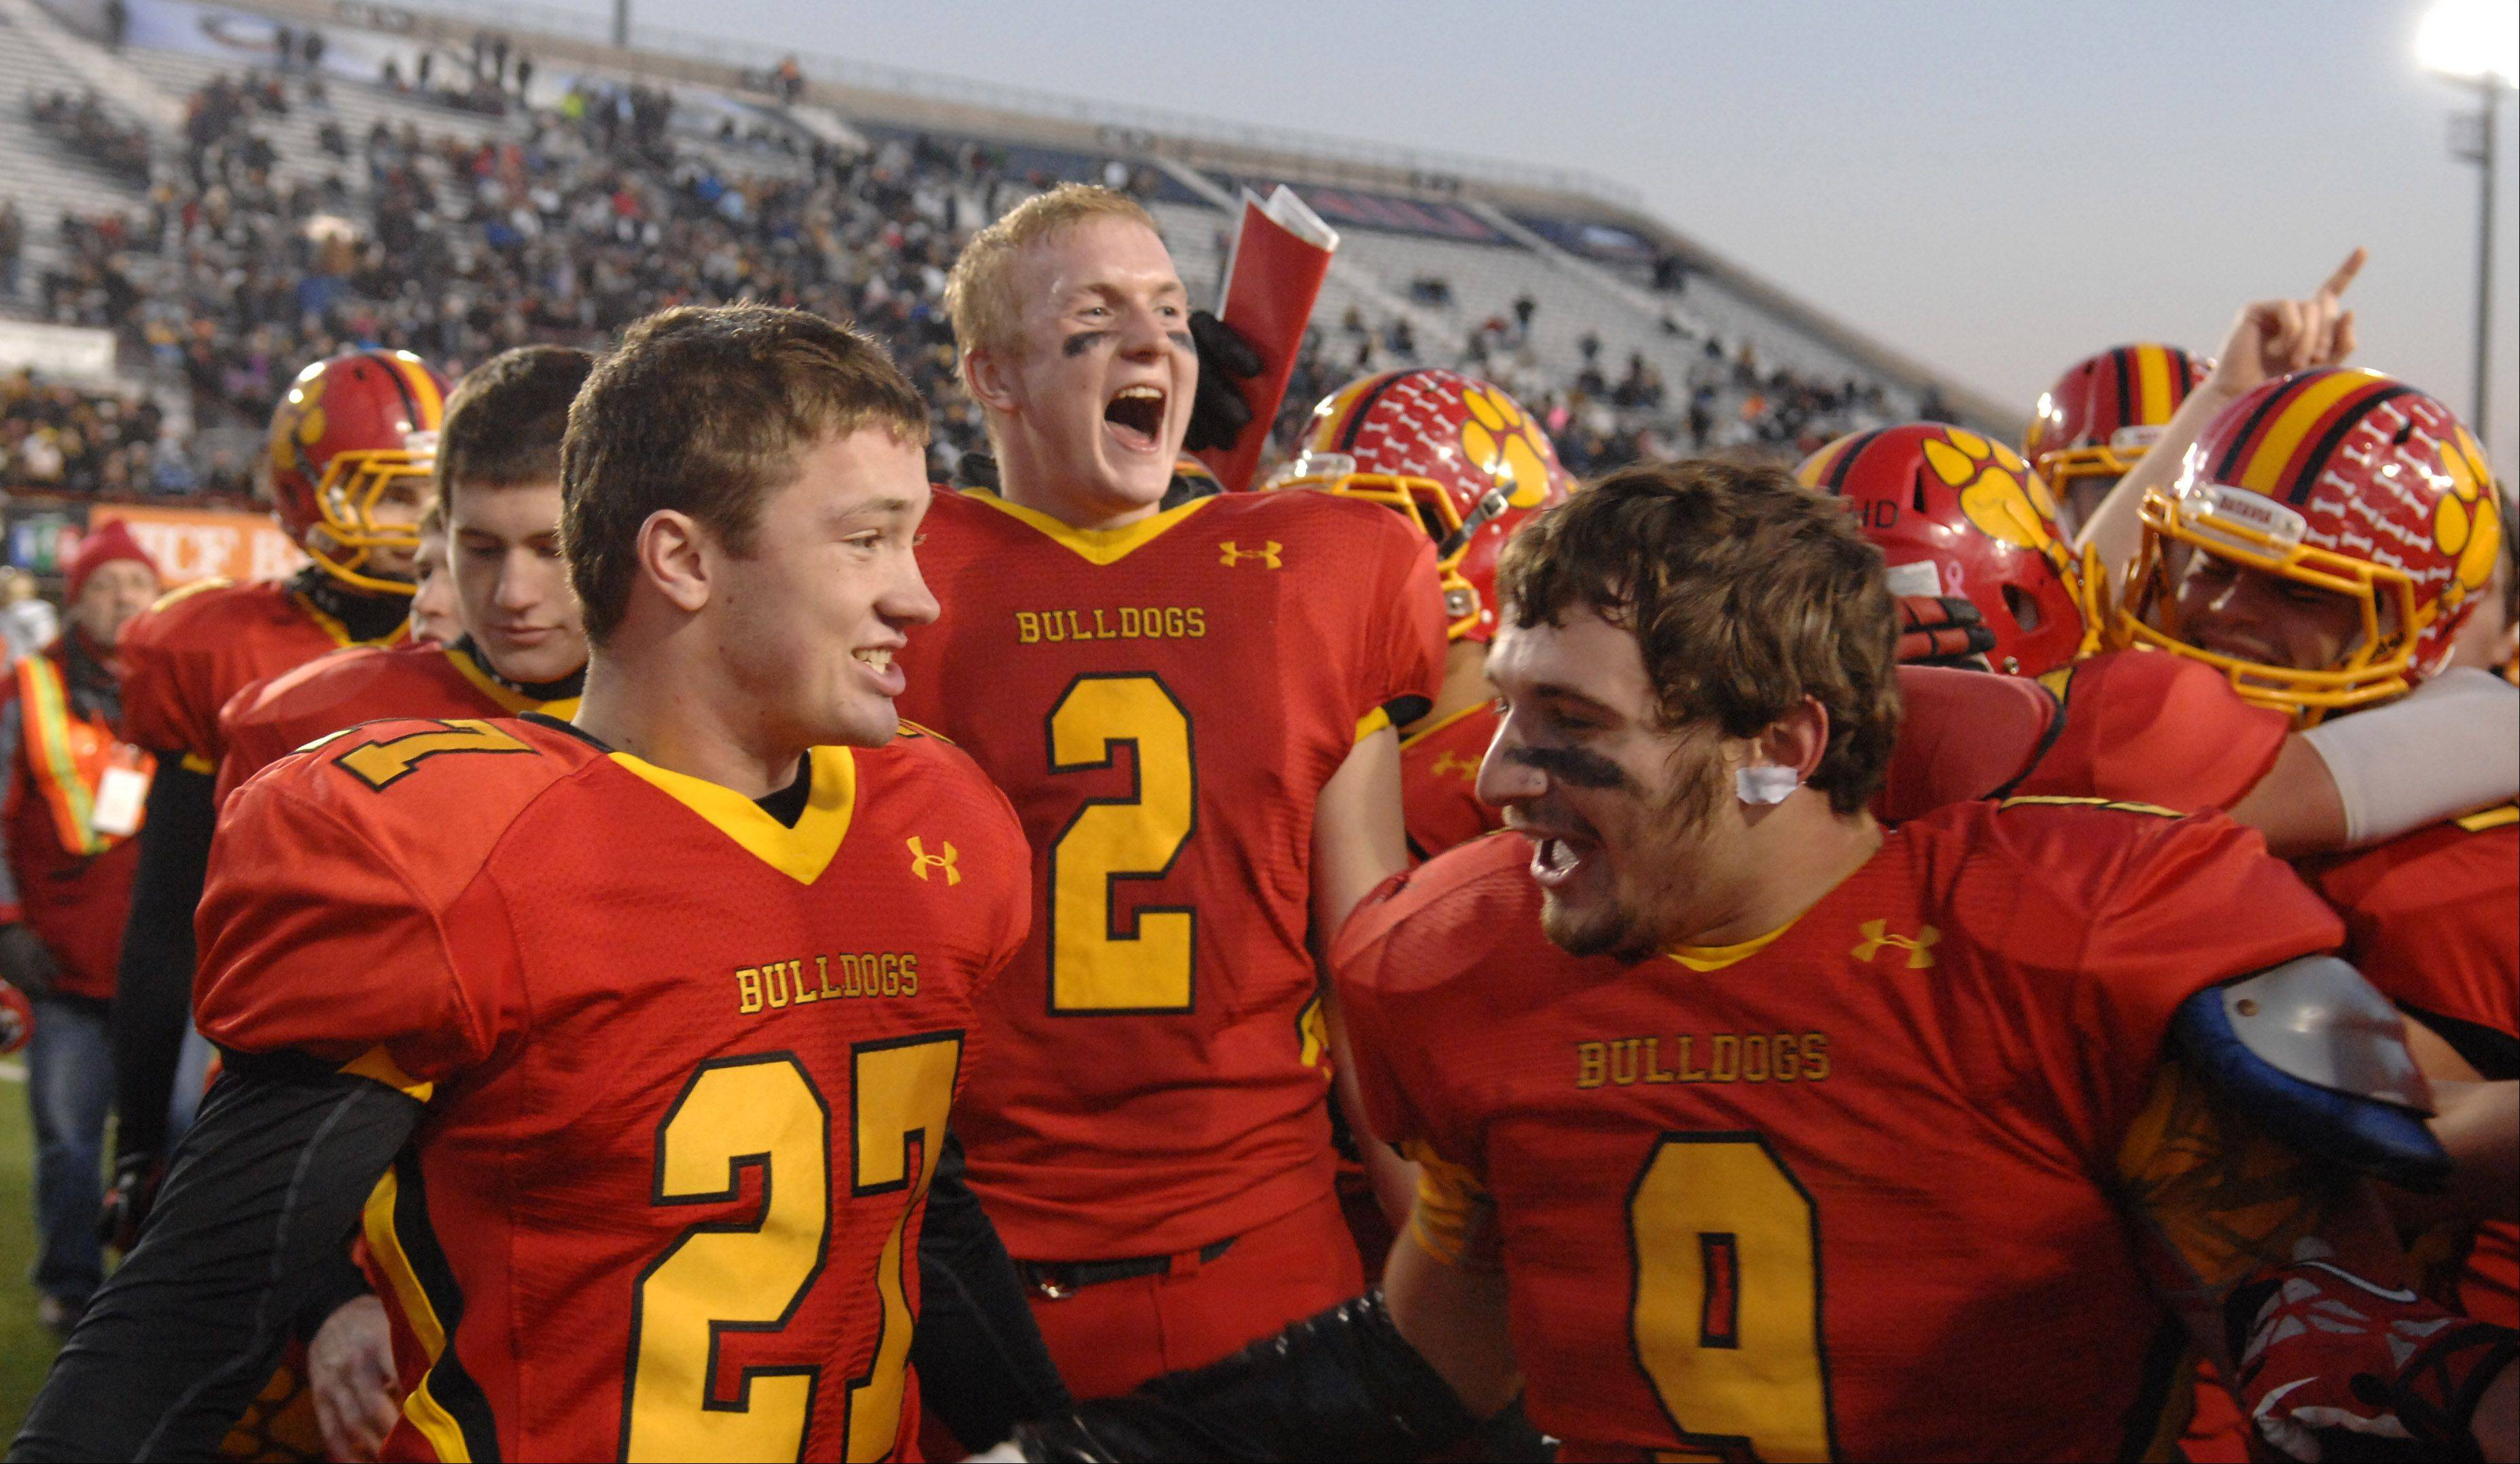 With their fans cheering in the background, Batavia players celebrate their Class 6A football championship at Huskie Stadium in DeKalb on Nov. 30